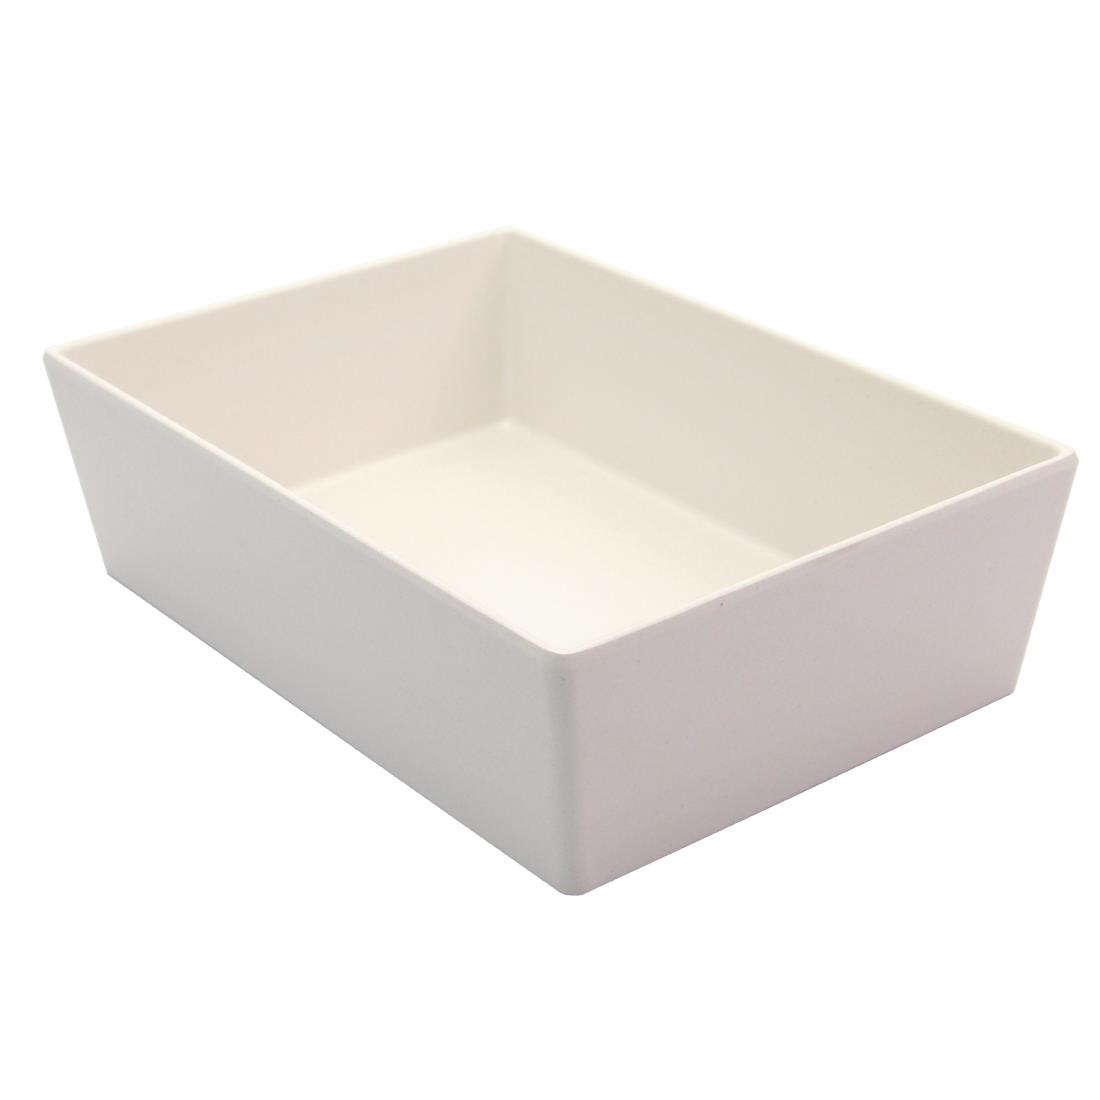 Image of Creative Melamine Salad Boxes White Bamboo 205x145x60mm (Pack of 6)